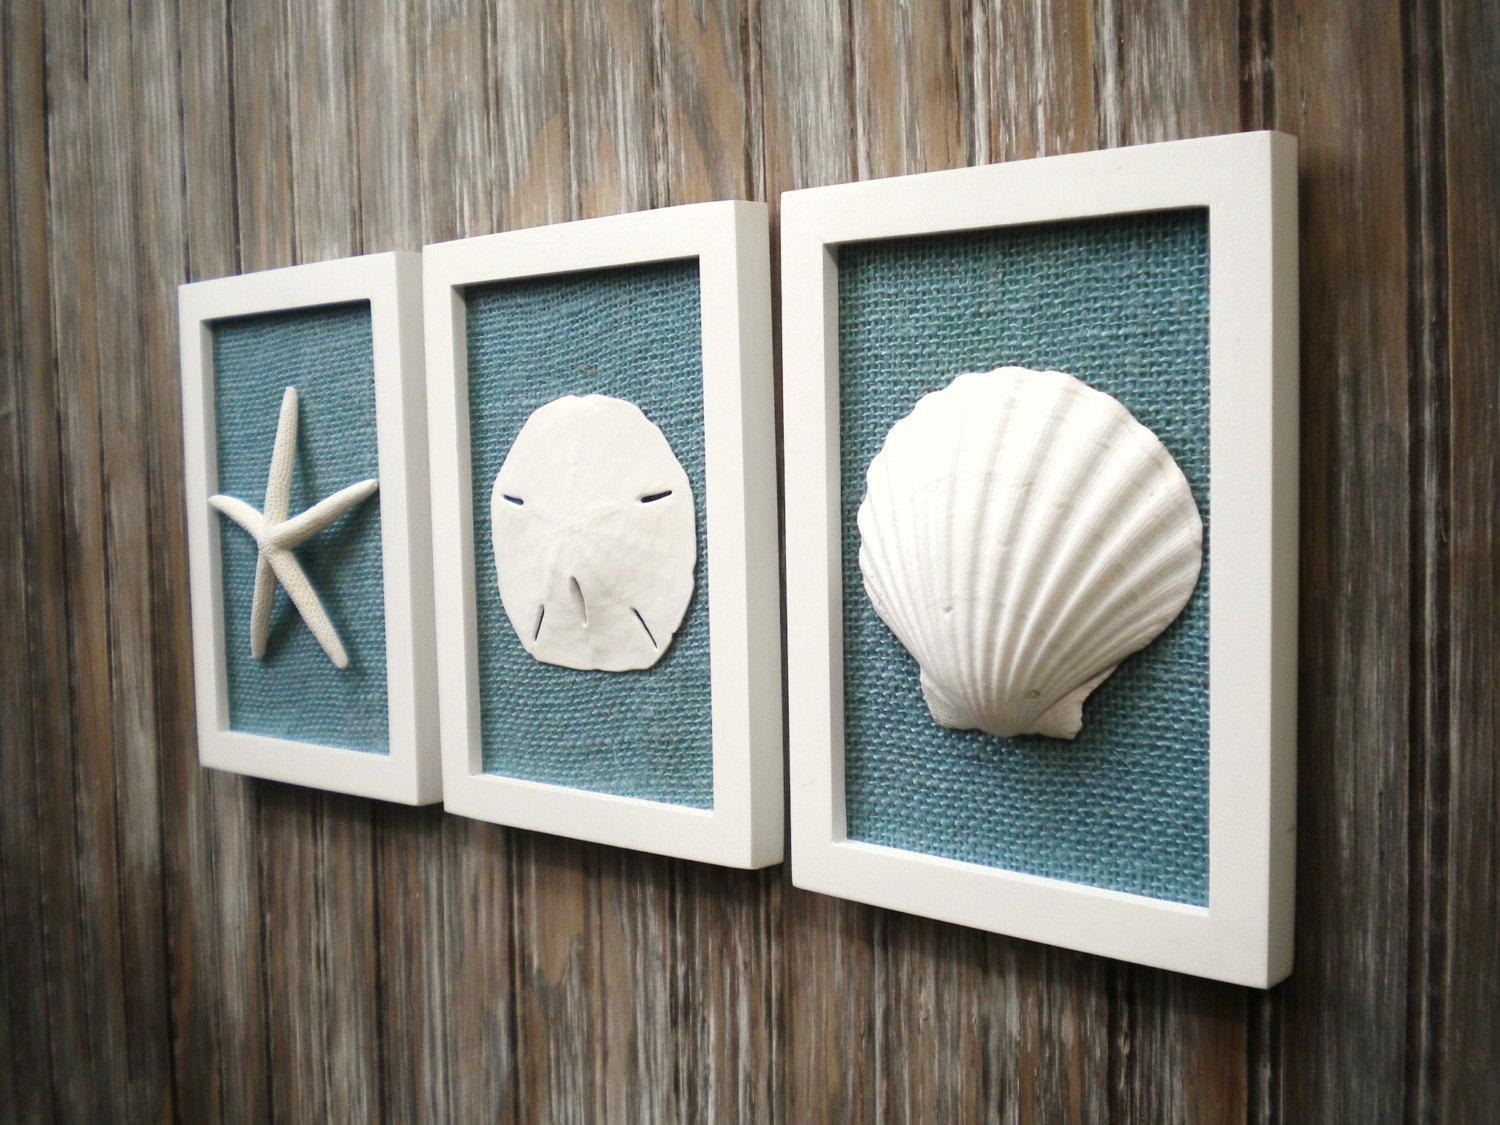 Cottage Chic Set Of Beach Decor Wall Art Nautical Decor Pertaining To Coastal Wall Art (Image 9 of 20)